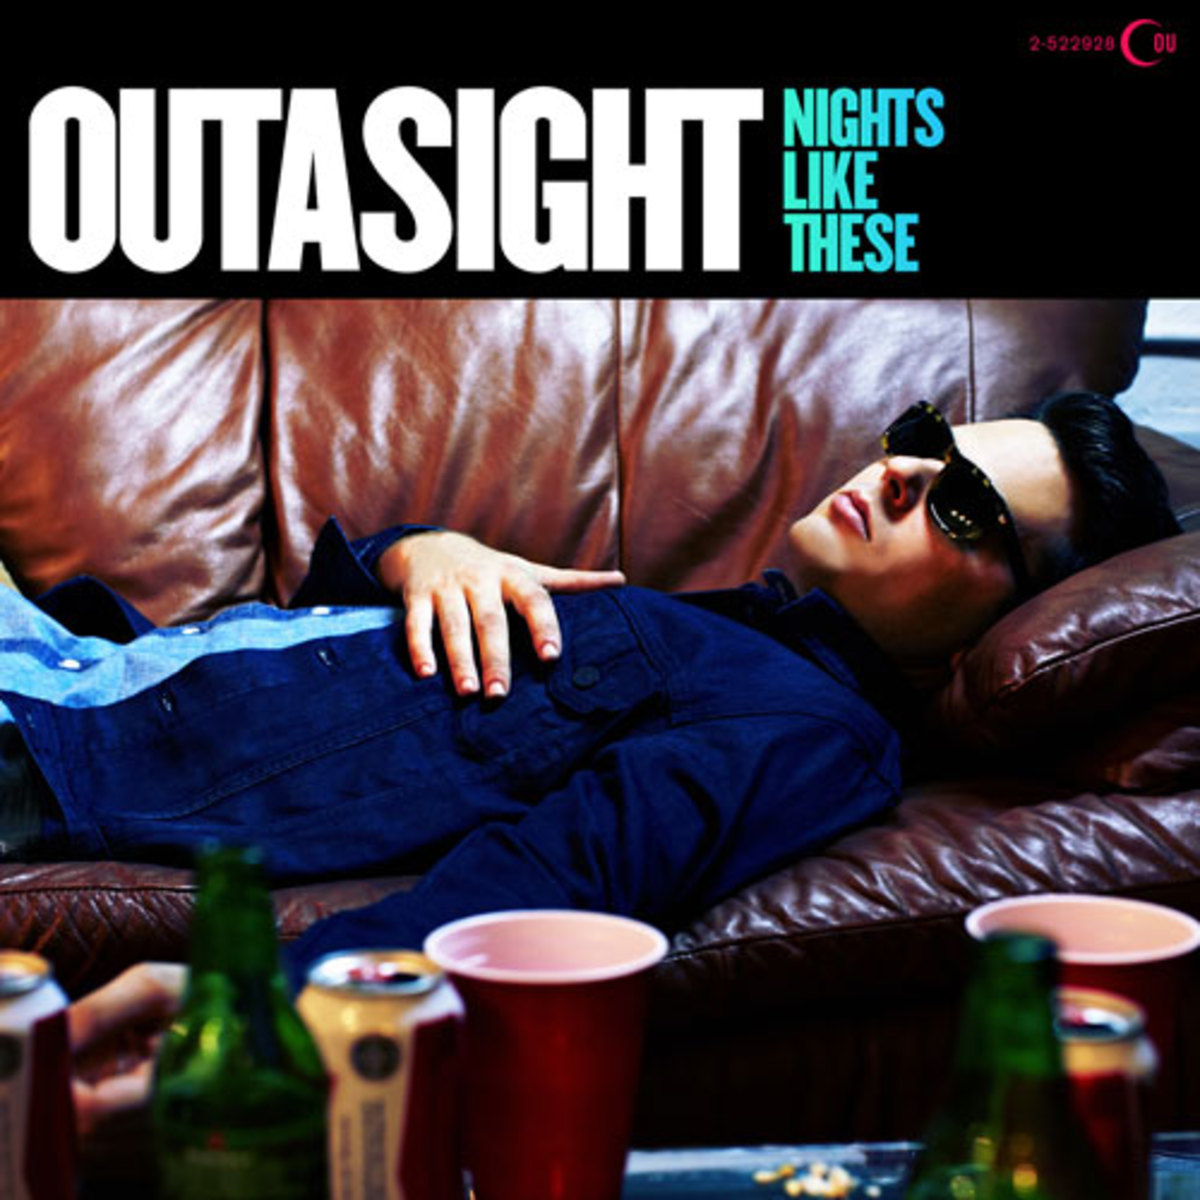 outasight-nightslikethese.jpg